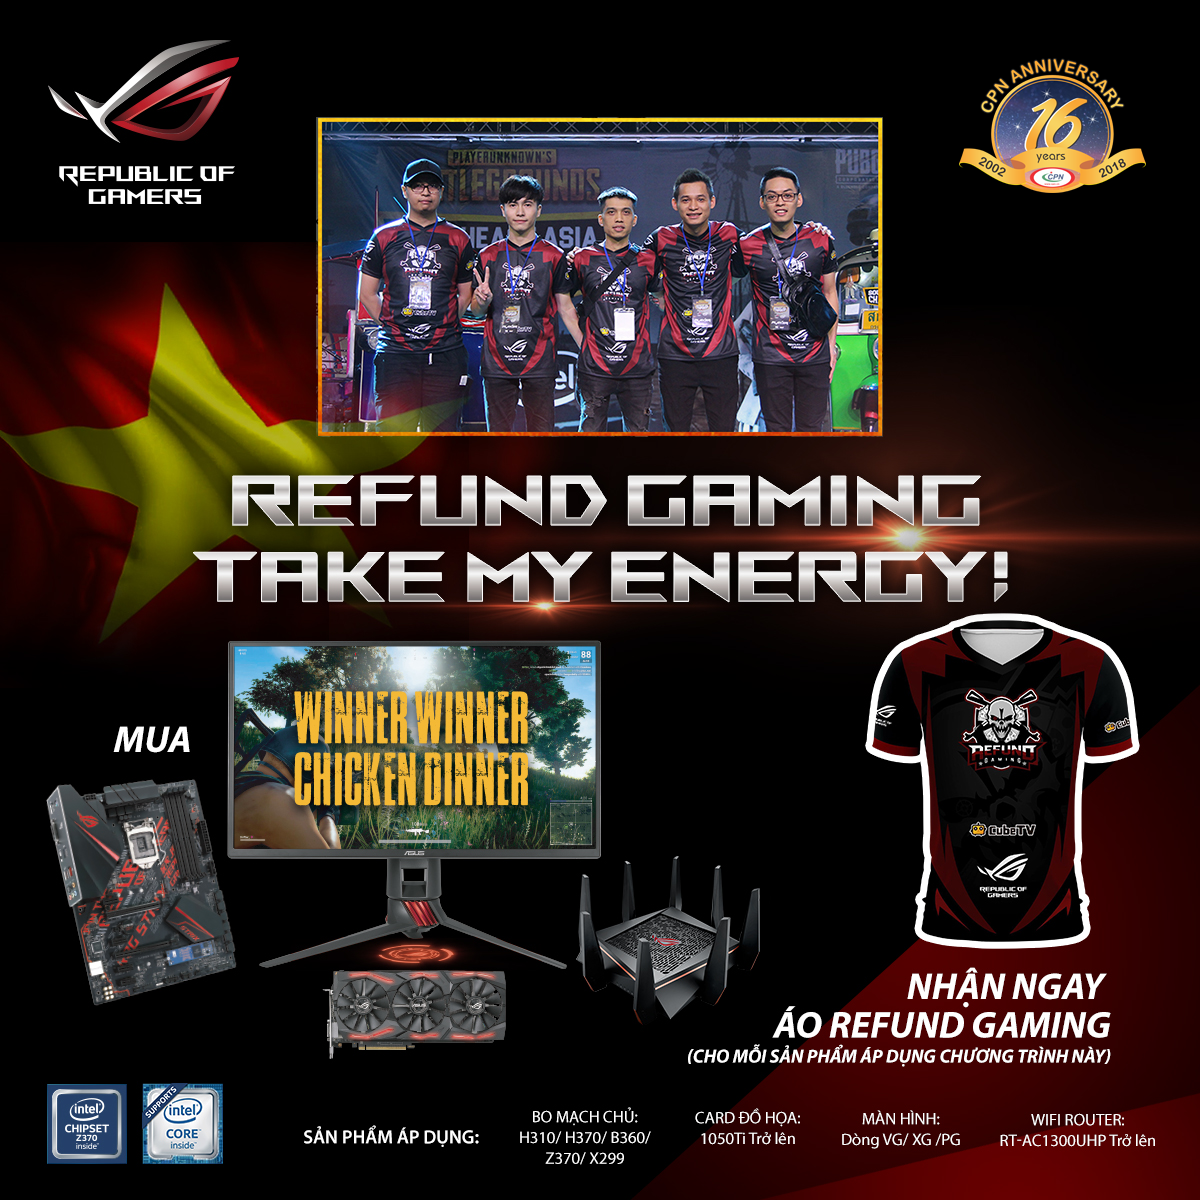 refund-gaming-promotion-fb-post2.png